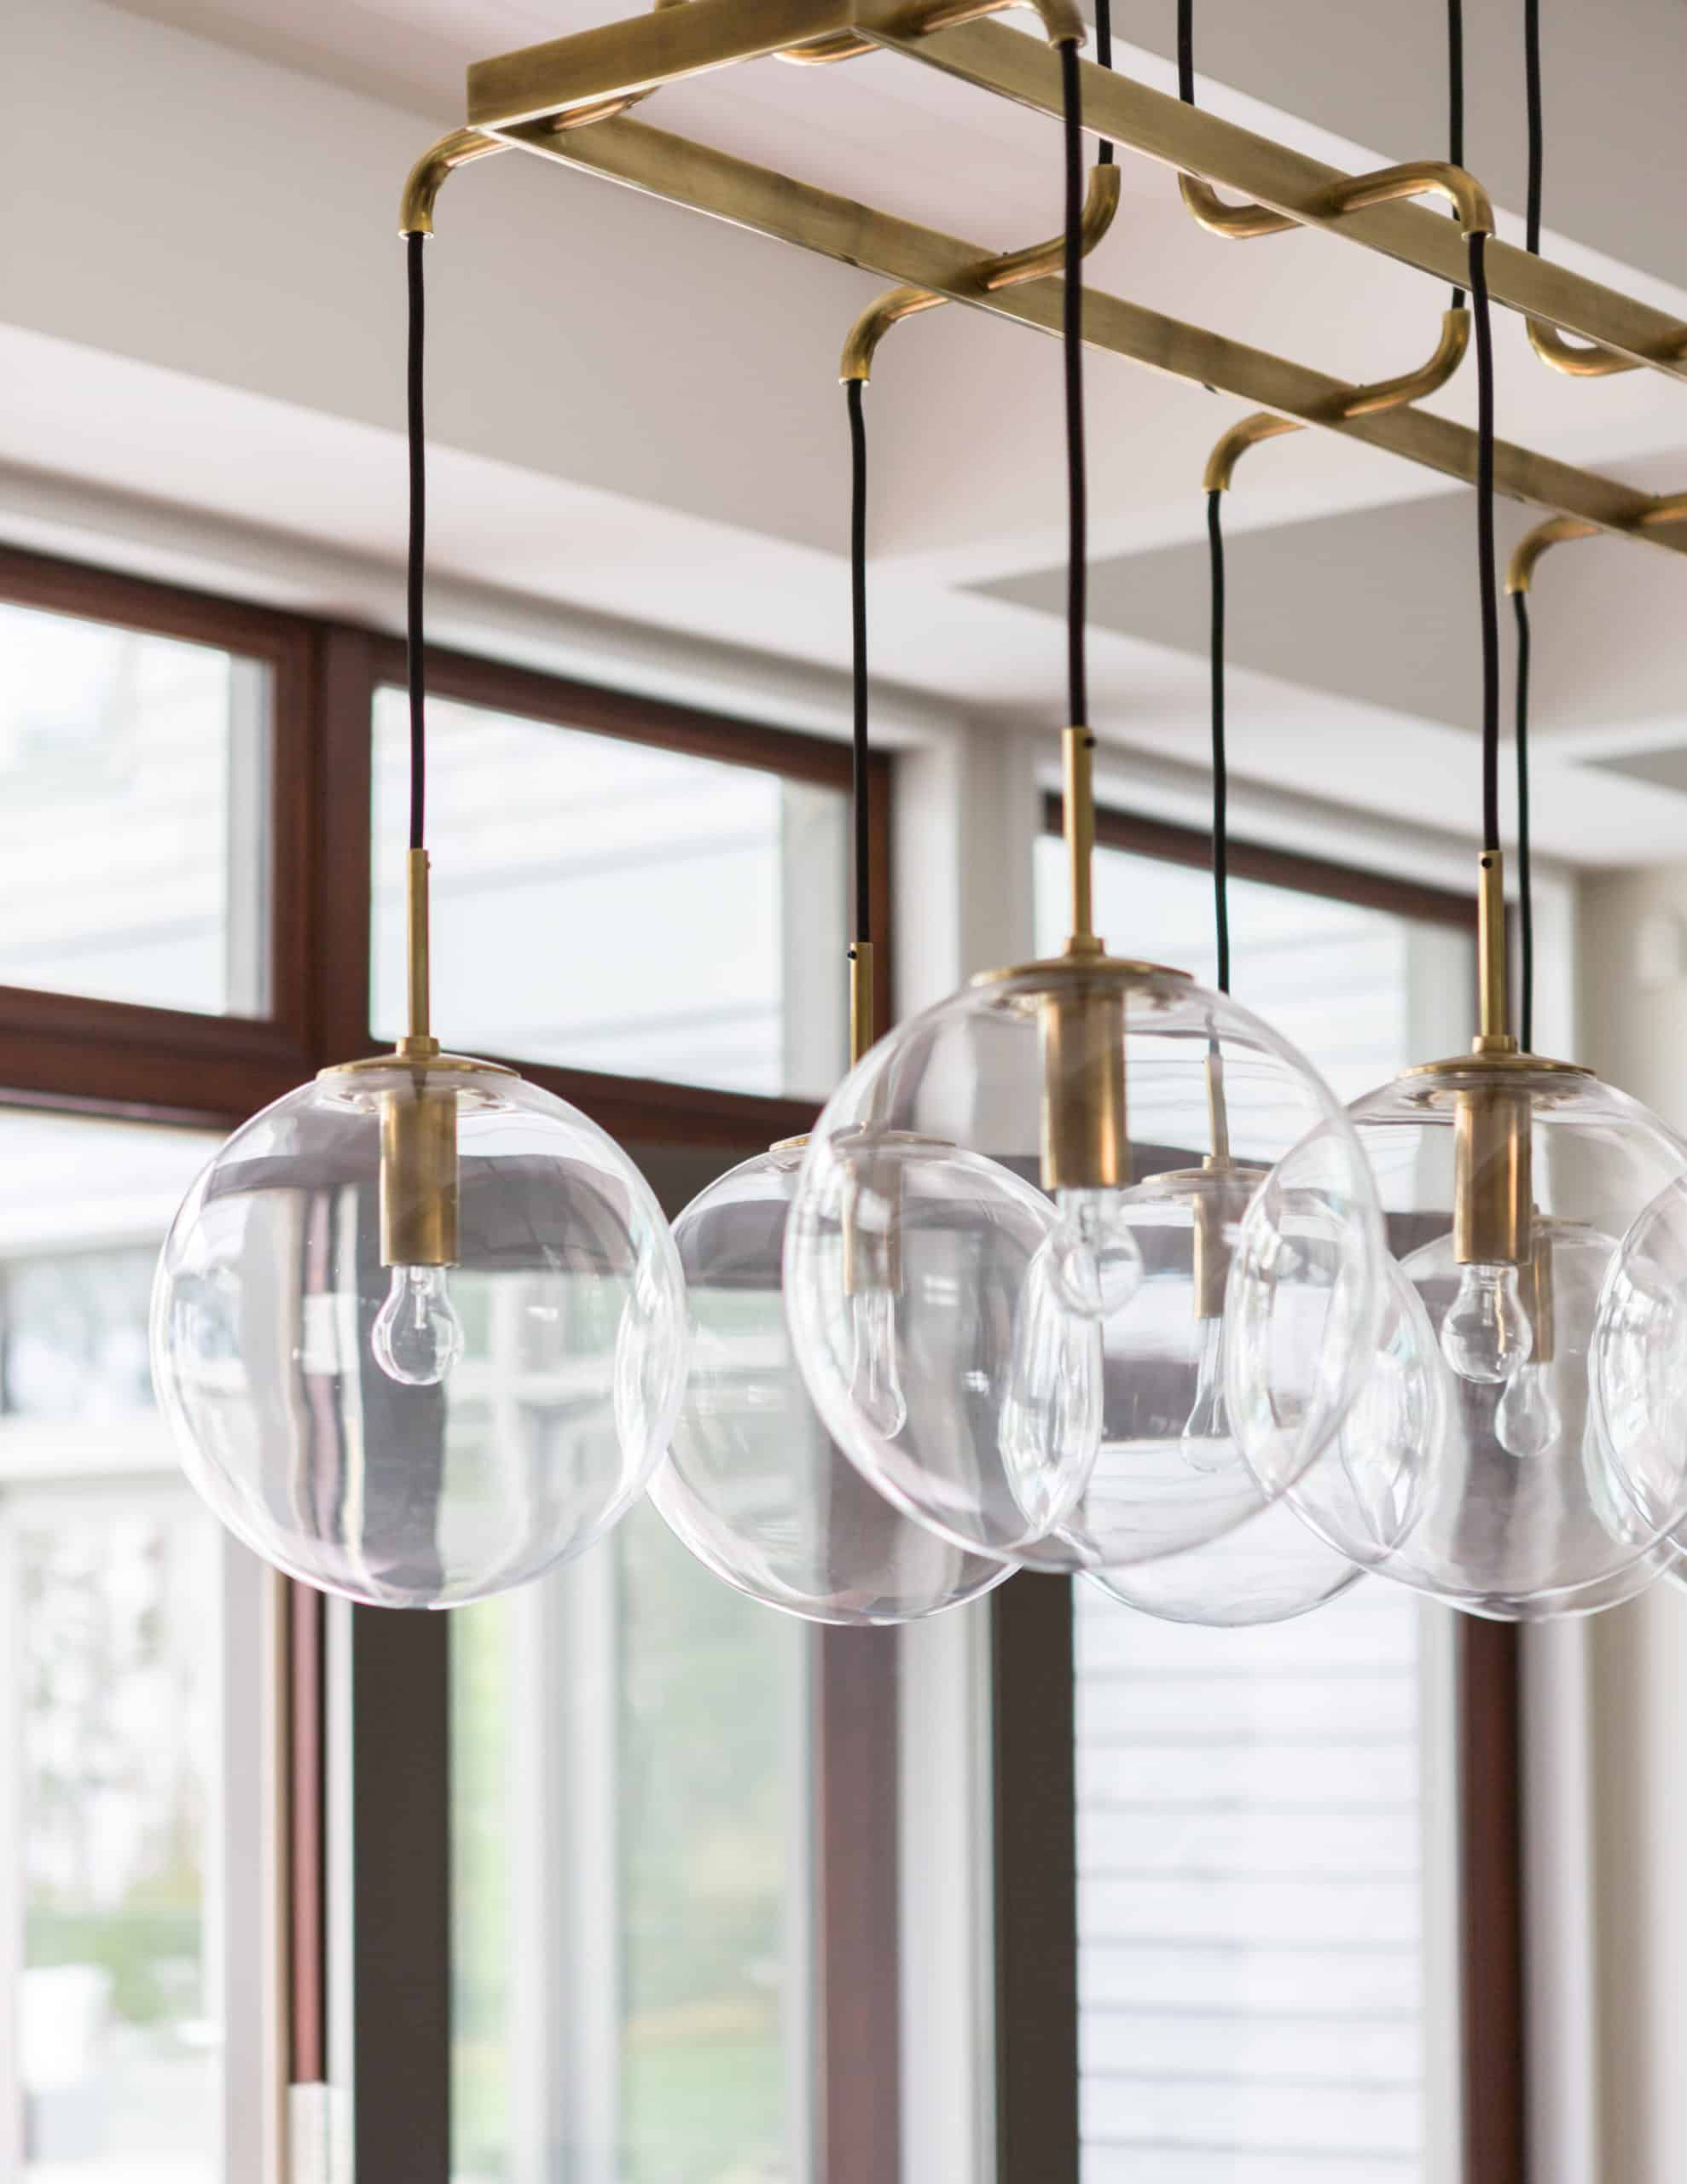 Globe lighting above a dining table.